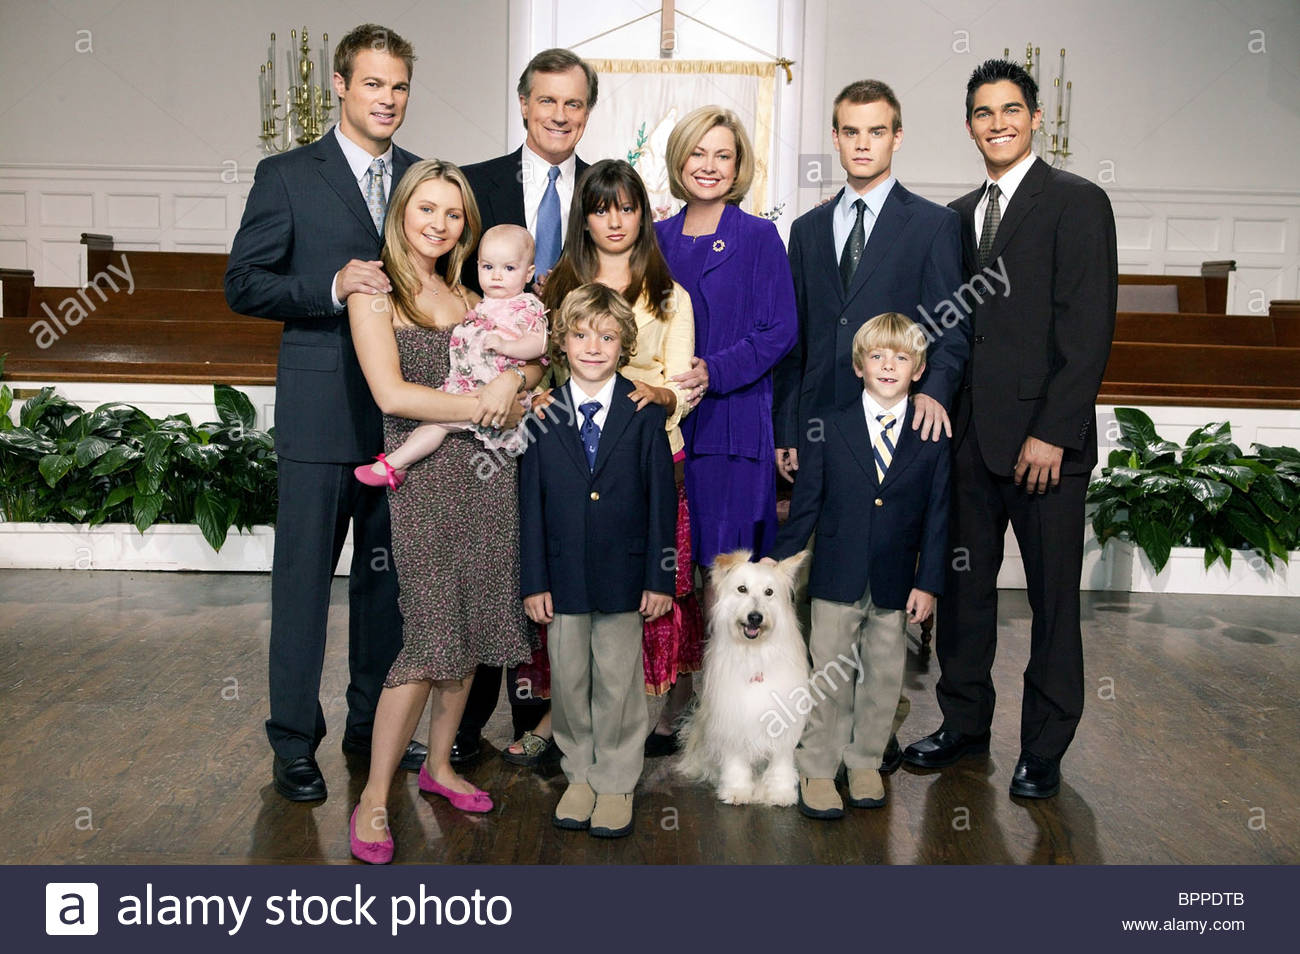 Stock Photo George Stults Beverley Mitchell Stephen Collins Mackenzie Rosman Lorenzo 31226619 furthermore Jessica Biel Pictures Photos Images Zimbio also Jessica Biel Red Carpet additionally Claudia Leitte Pictures as well Cameron Diaz Benji Madden Juntos. on justin timberlake wedding